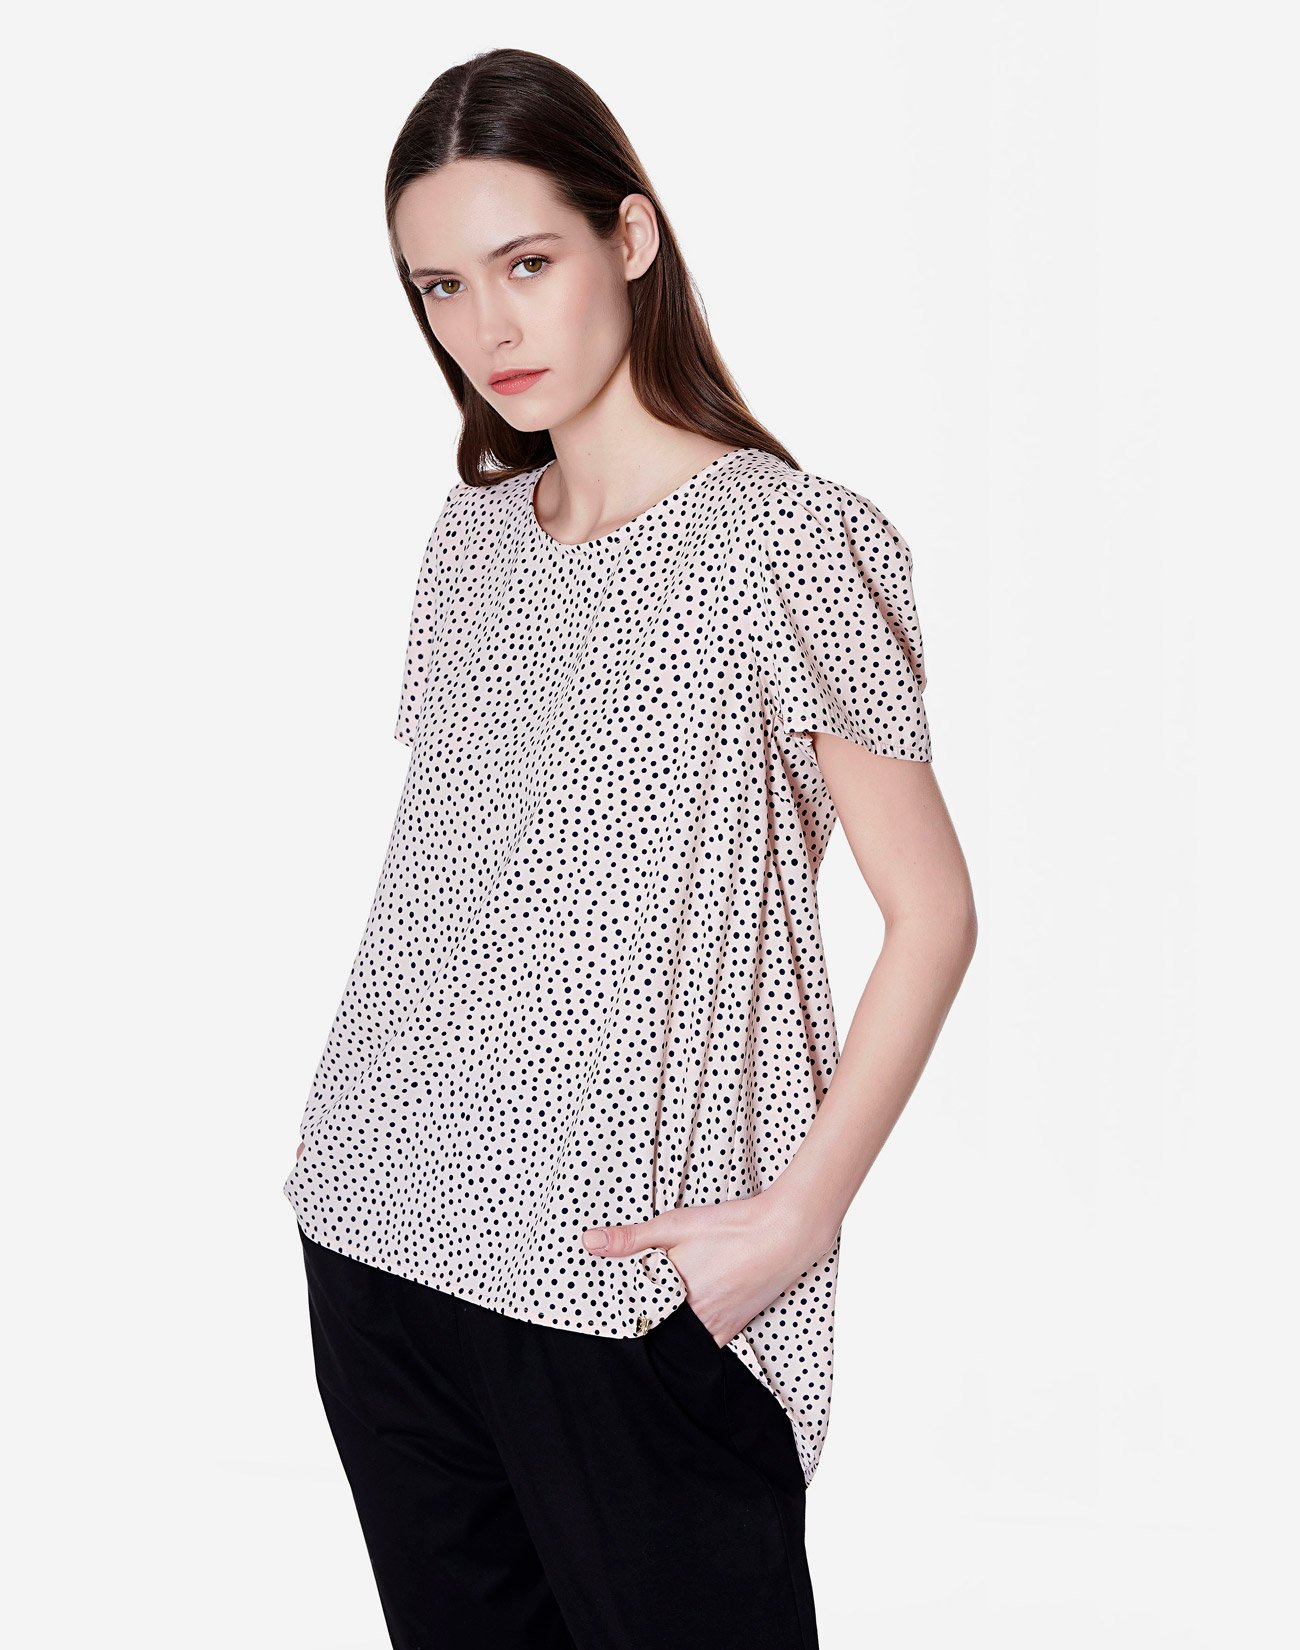 Polka dot top with bow